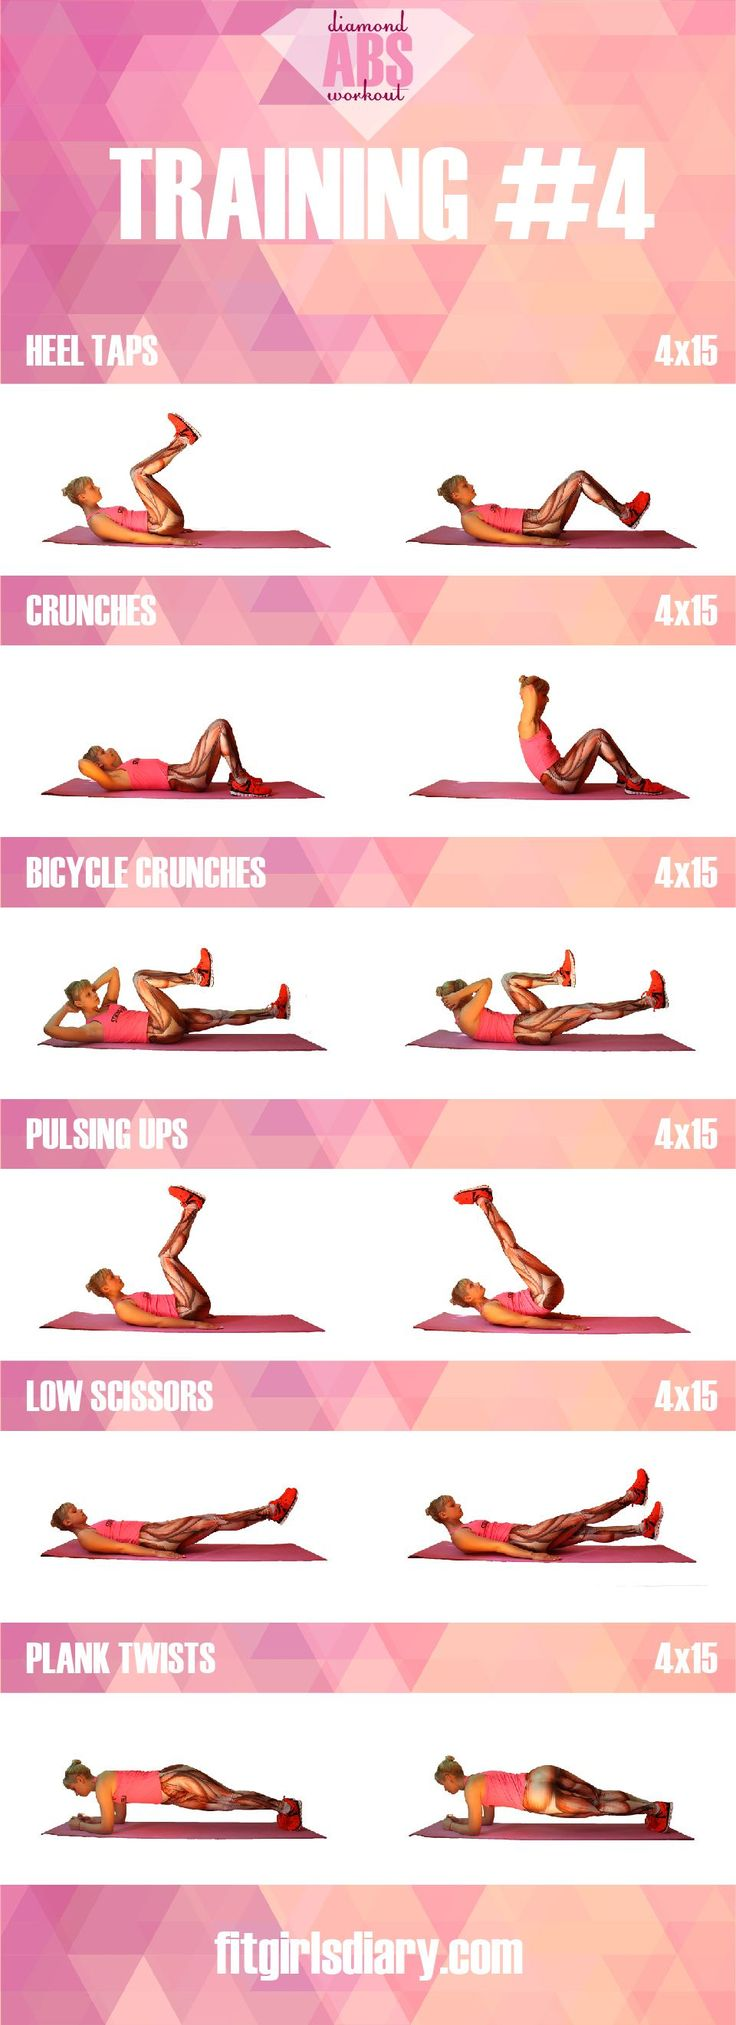 Diamond Abs Workout - Collection Of The Best Ab Exercises for Women - Page 2 of 2 - Fit Girl's Diary